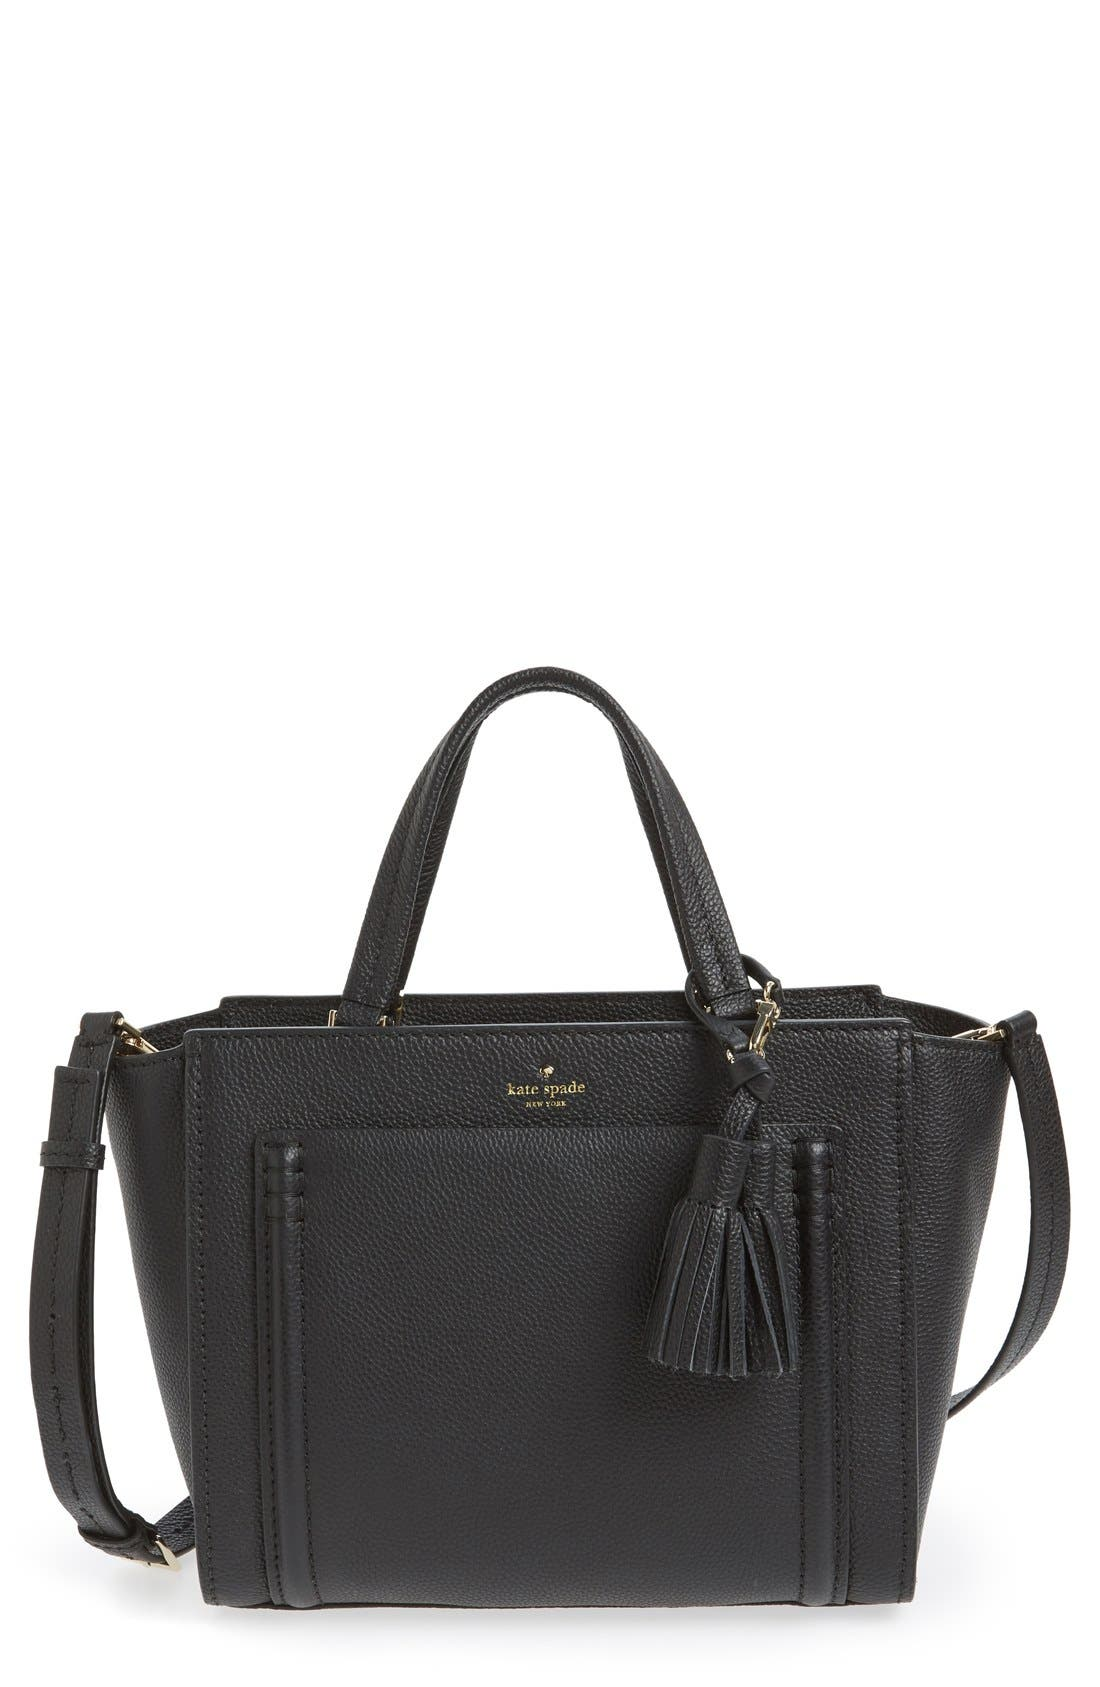 Alternate Image 1 Selected - kate spade new york 'orchard street - dillon' tassel leather satchel